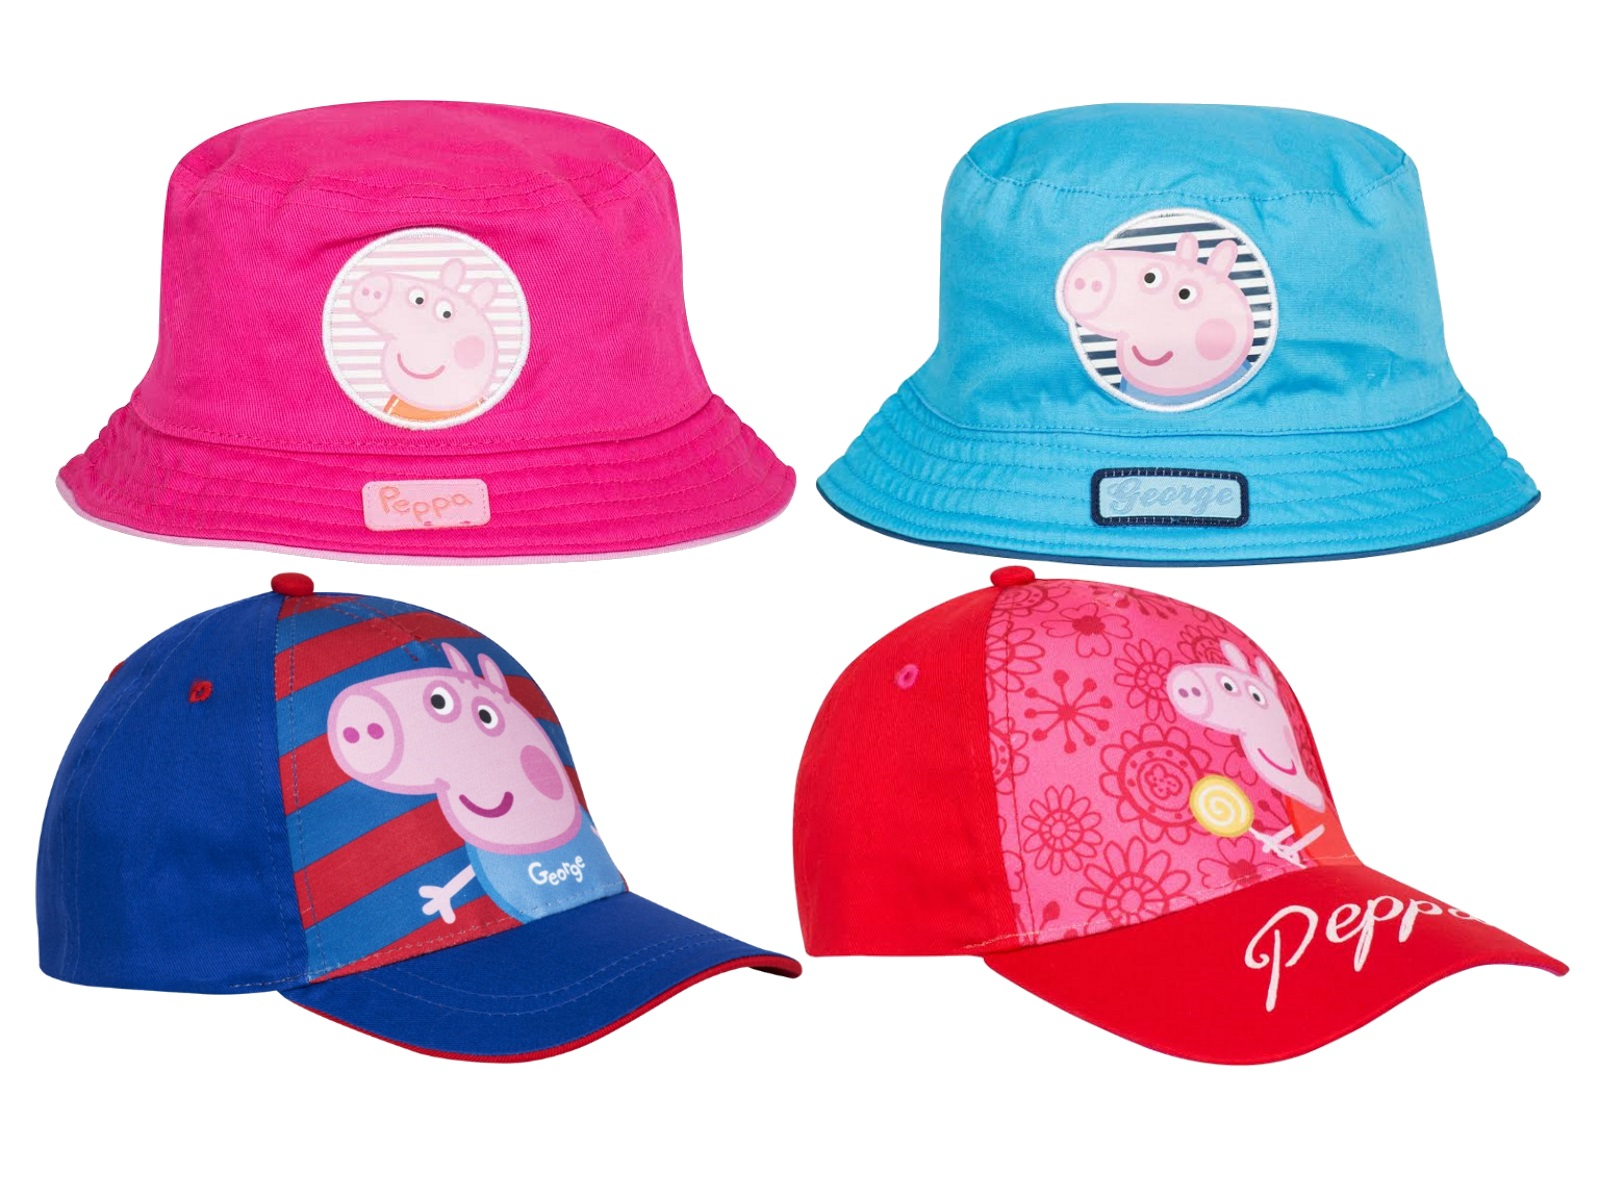 Boys Girls Peppa Pig Sun Hat George Summer Baseball Peak Cap Childrens Size  S-XL a3fae89df38